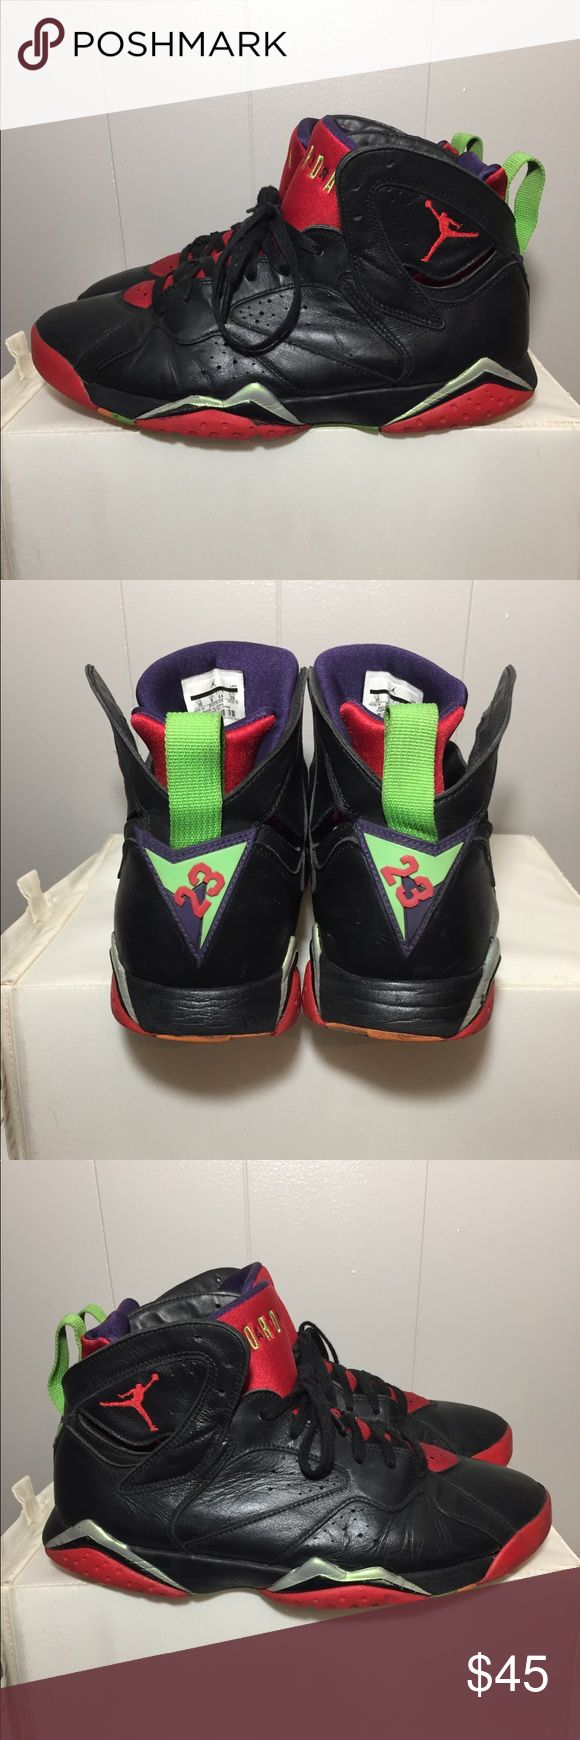 "Air Jordan 7 Retro "" Marvin the Martian"" - mens size: -colorway:black/university red/green pls -stylecode:304775-029 -Release Date:2015 -conditions:BEATERS( heal drag, sole bubbling(see pictures)/separation-uppers are in great condition 100% WEARABLE 👈🏽👈🏽 -No box⬅️ -100% authentic⬅️ -🚫no trades🚫 -Open to serious offers via the "" offer"" feature⬅️ -sold as is!!!👈🏽👈🏽👉🏽👉🏽please look at all pictures and ask questions before buying shoes ⬅️👈🏽 -irrelevant comments will get you…"